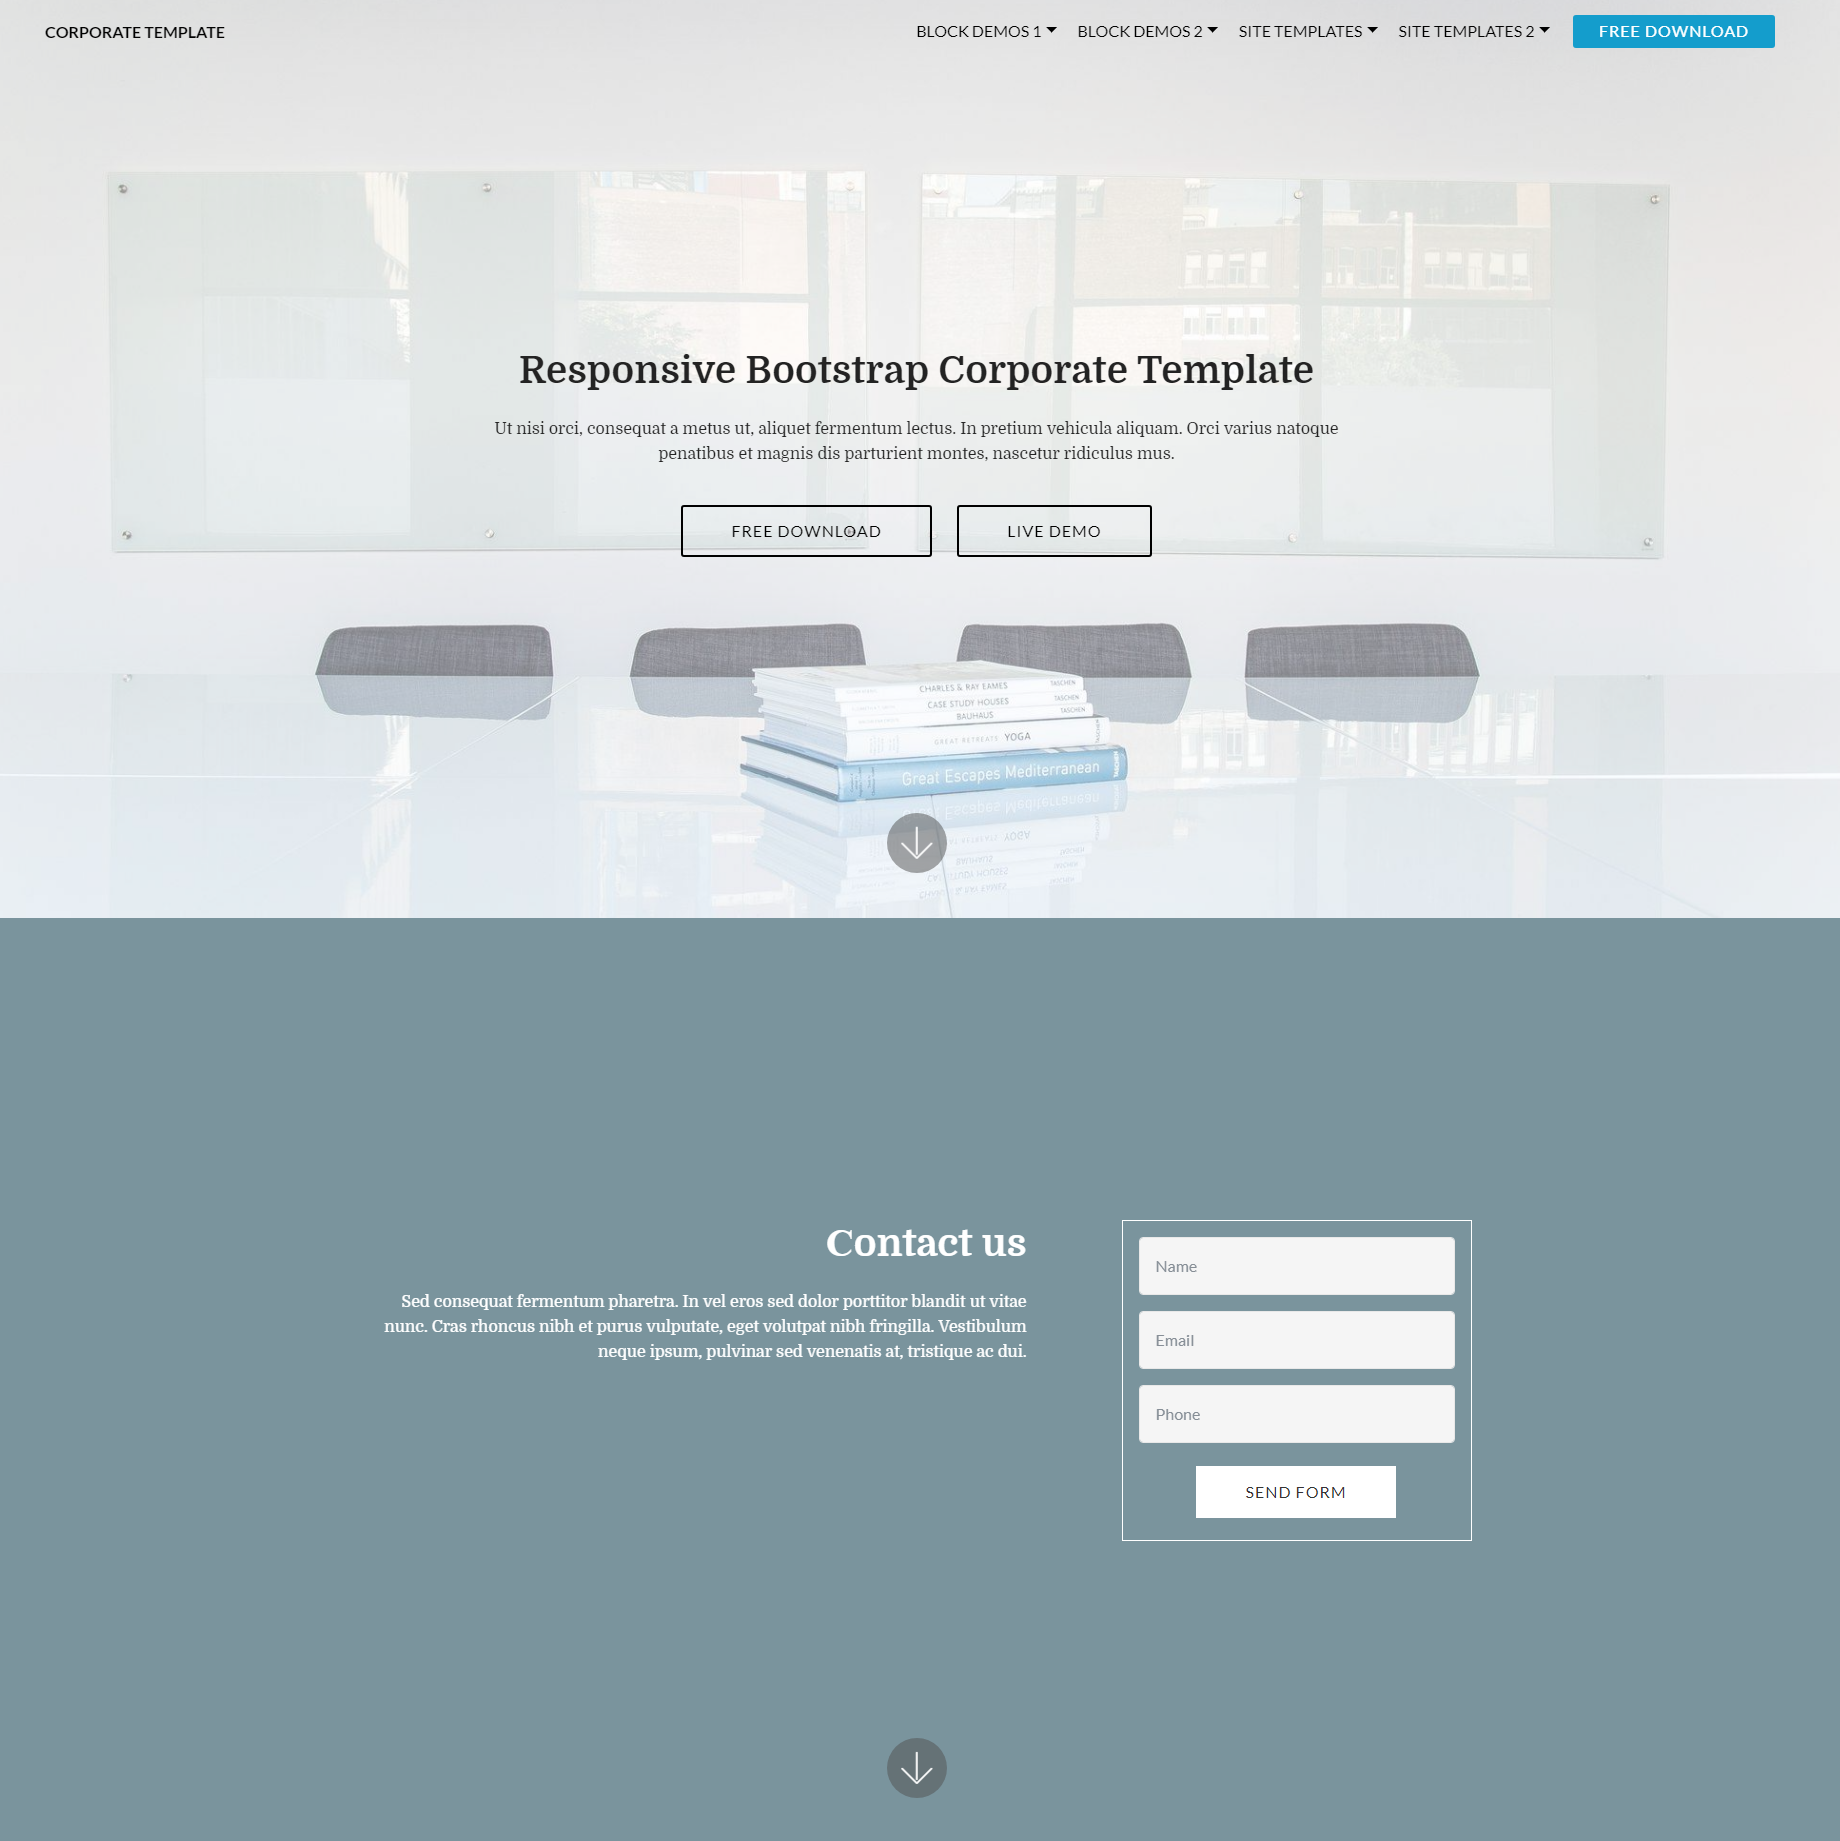 30 free html5 bootstrap templates of 2018 that will wow you css3 bootstrap corporate themes free template download cheaphphosting Choice Image